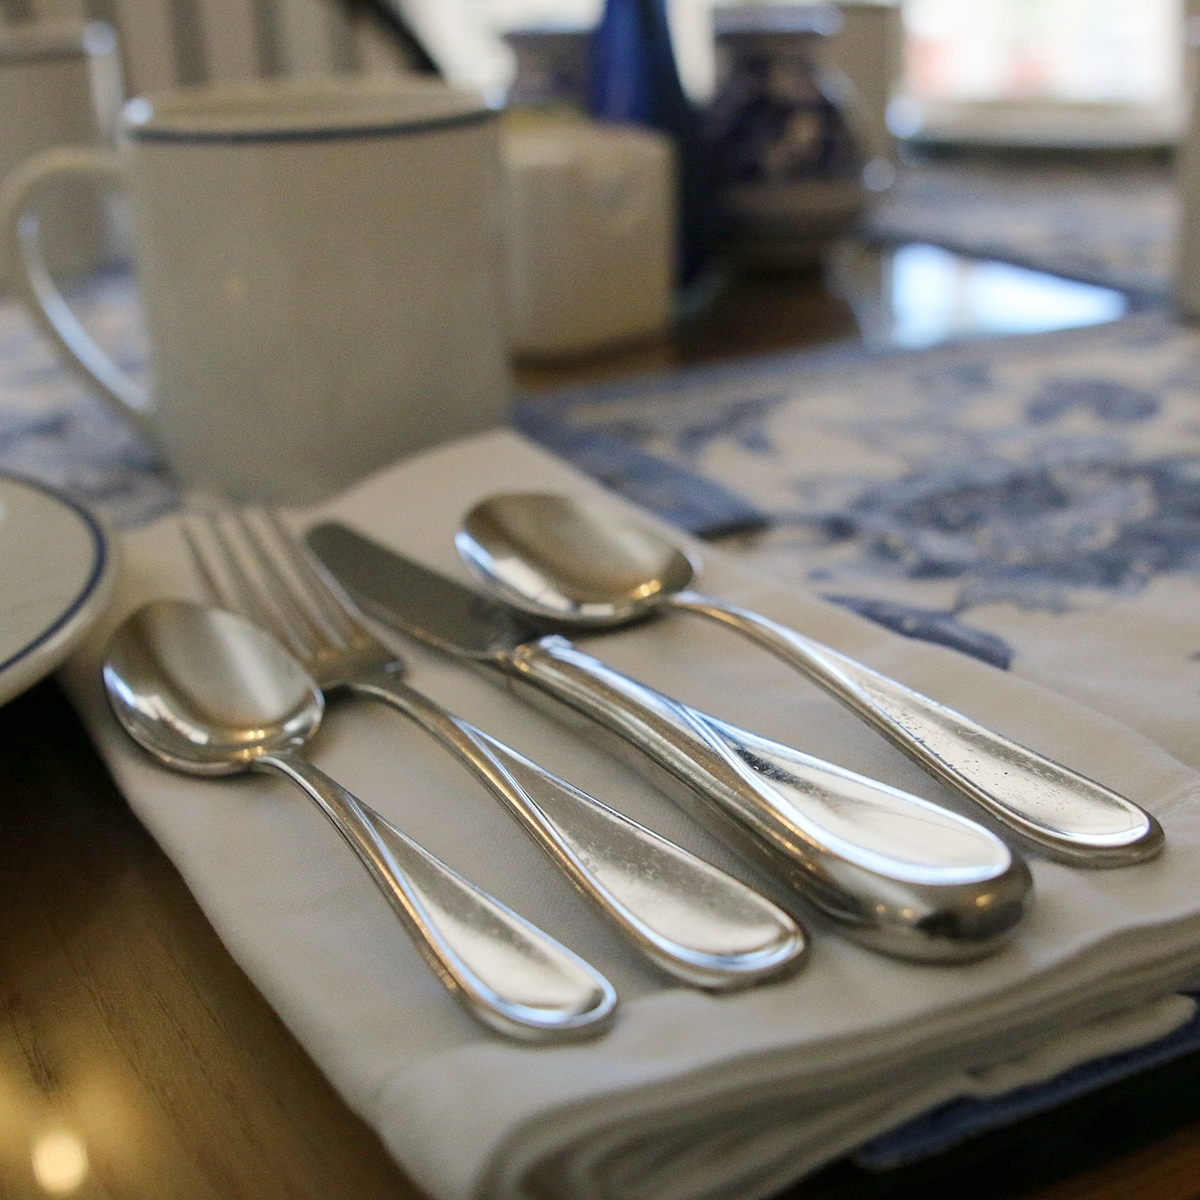 Placesetting_IMG_7348.jpg